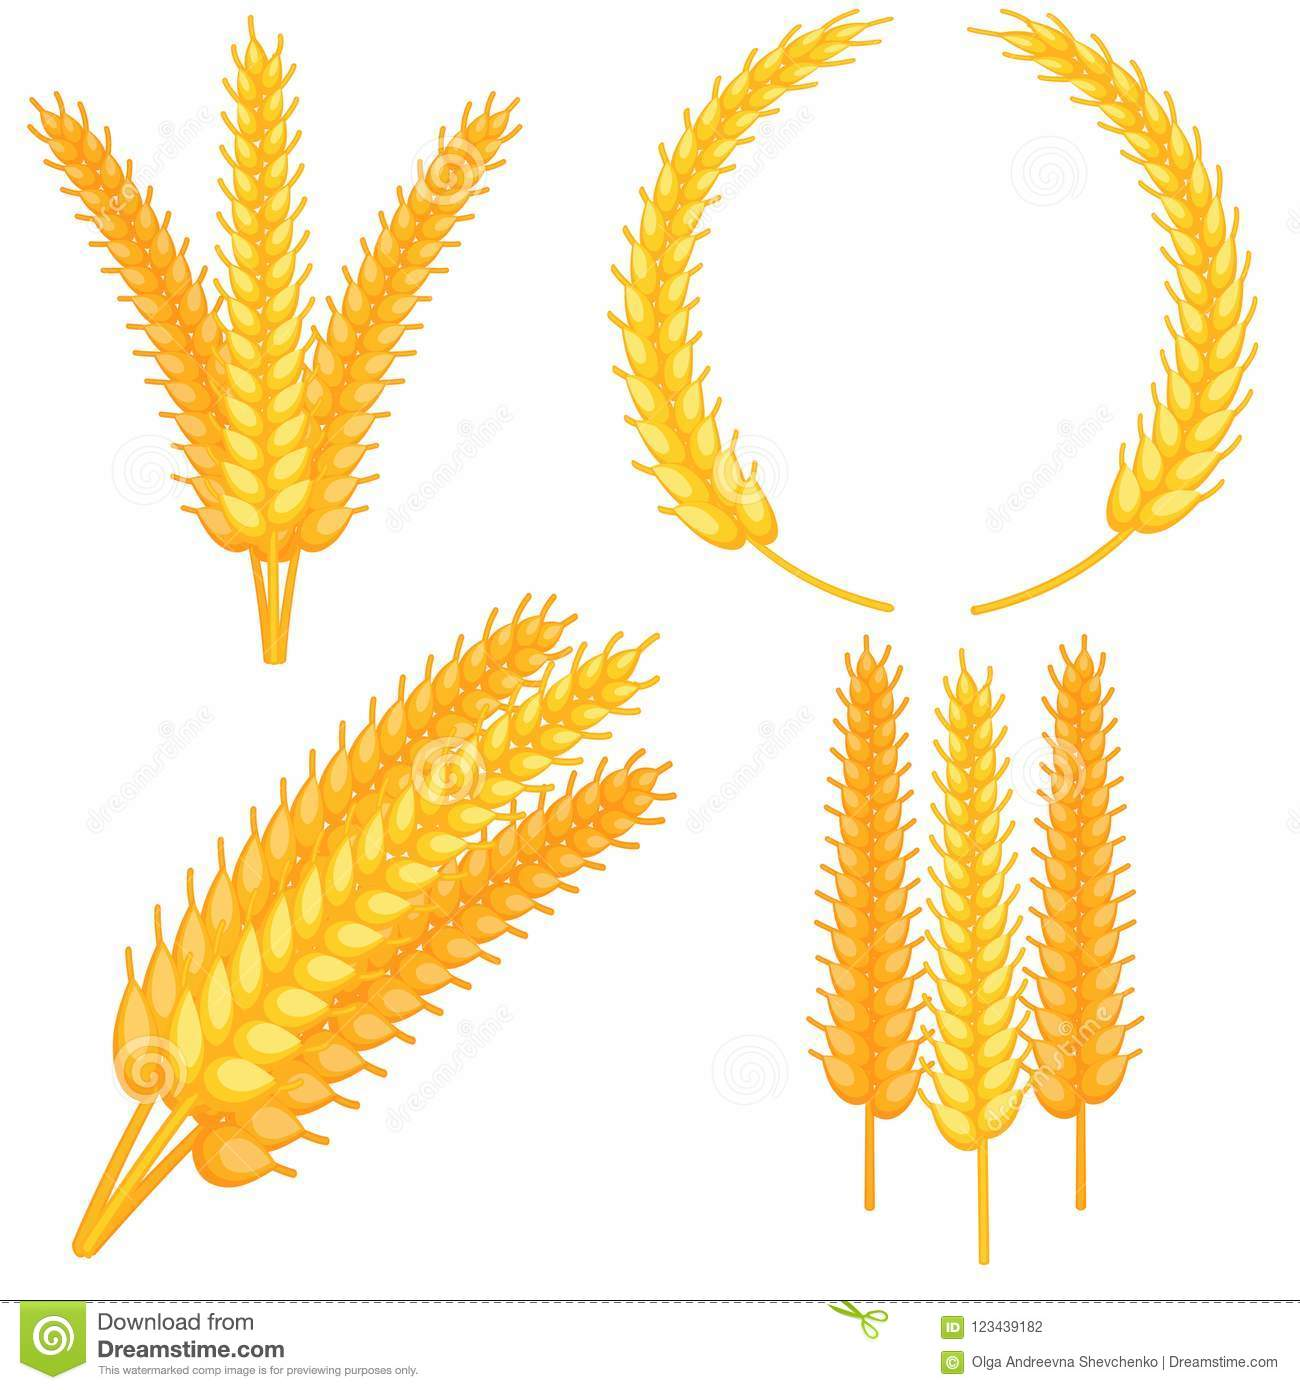 Colorful Cartoon Ripe Wheat Ear Set Stock Vector Illustration Of